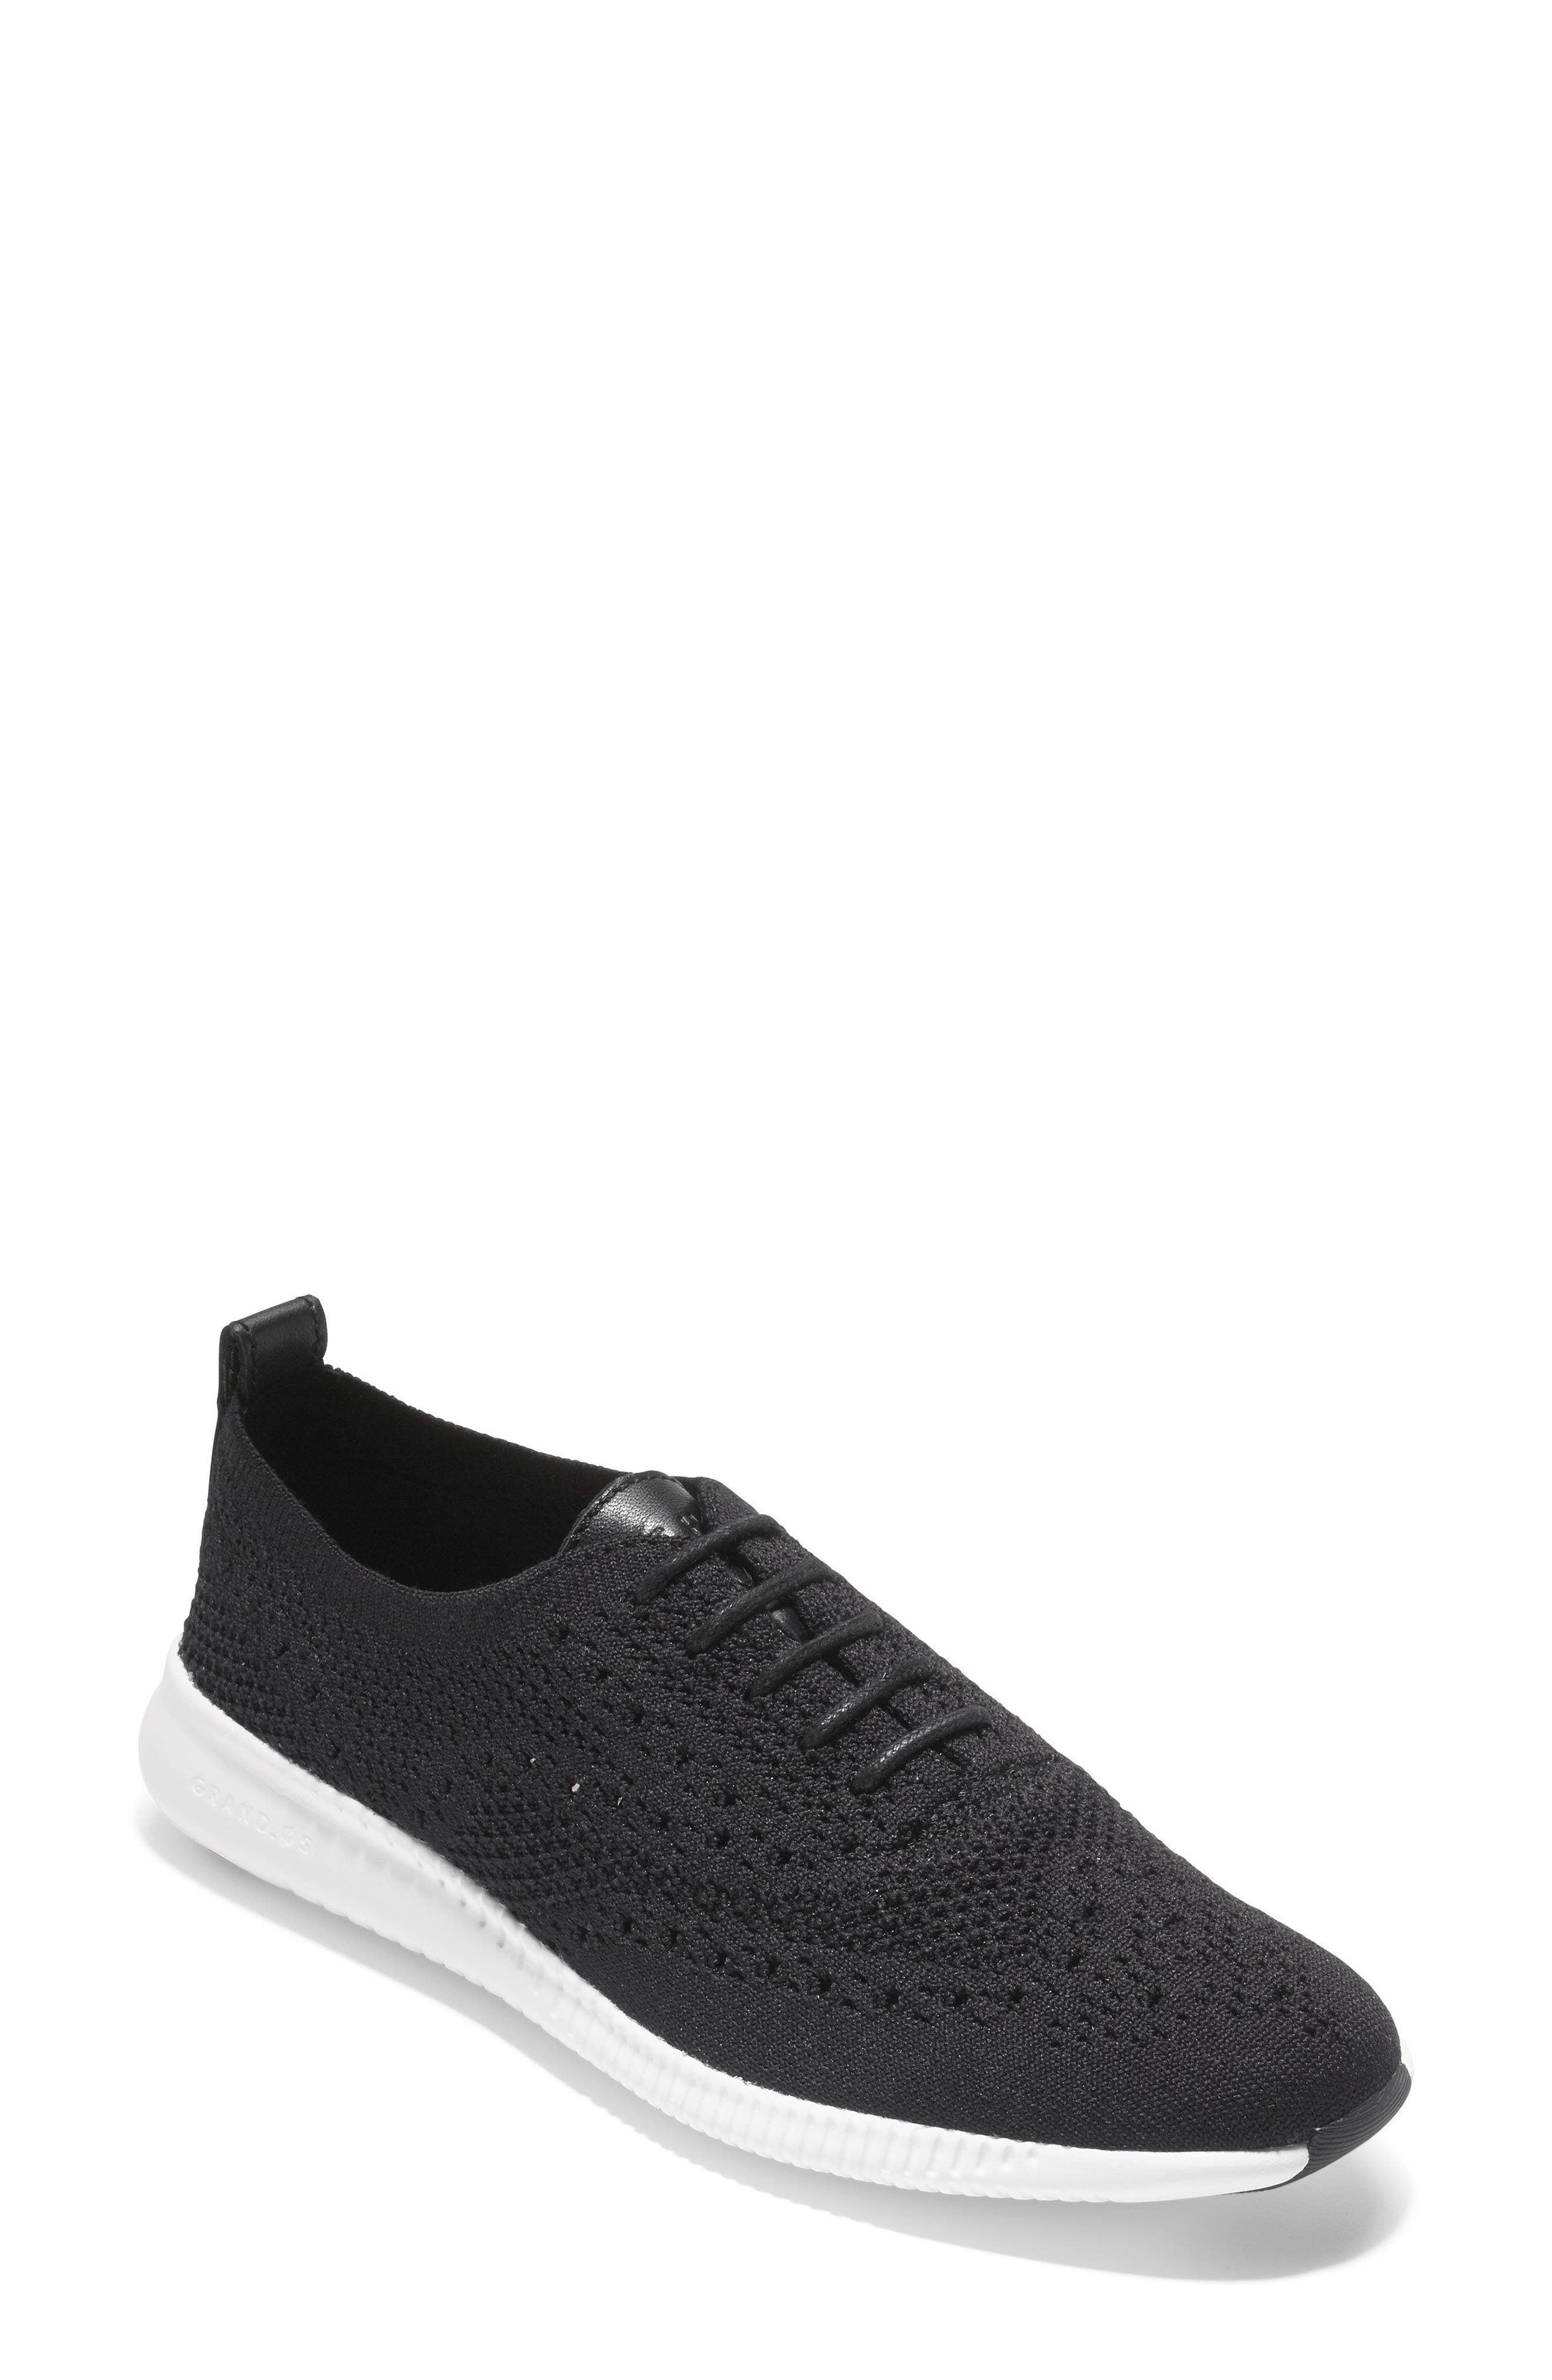 COLE HAAN 2.ZERØGRAND Stitchlite Wingtip Sneaker, Main, color, BLACK FABRIC